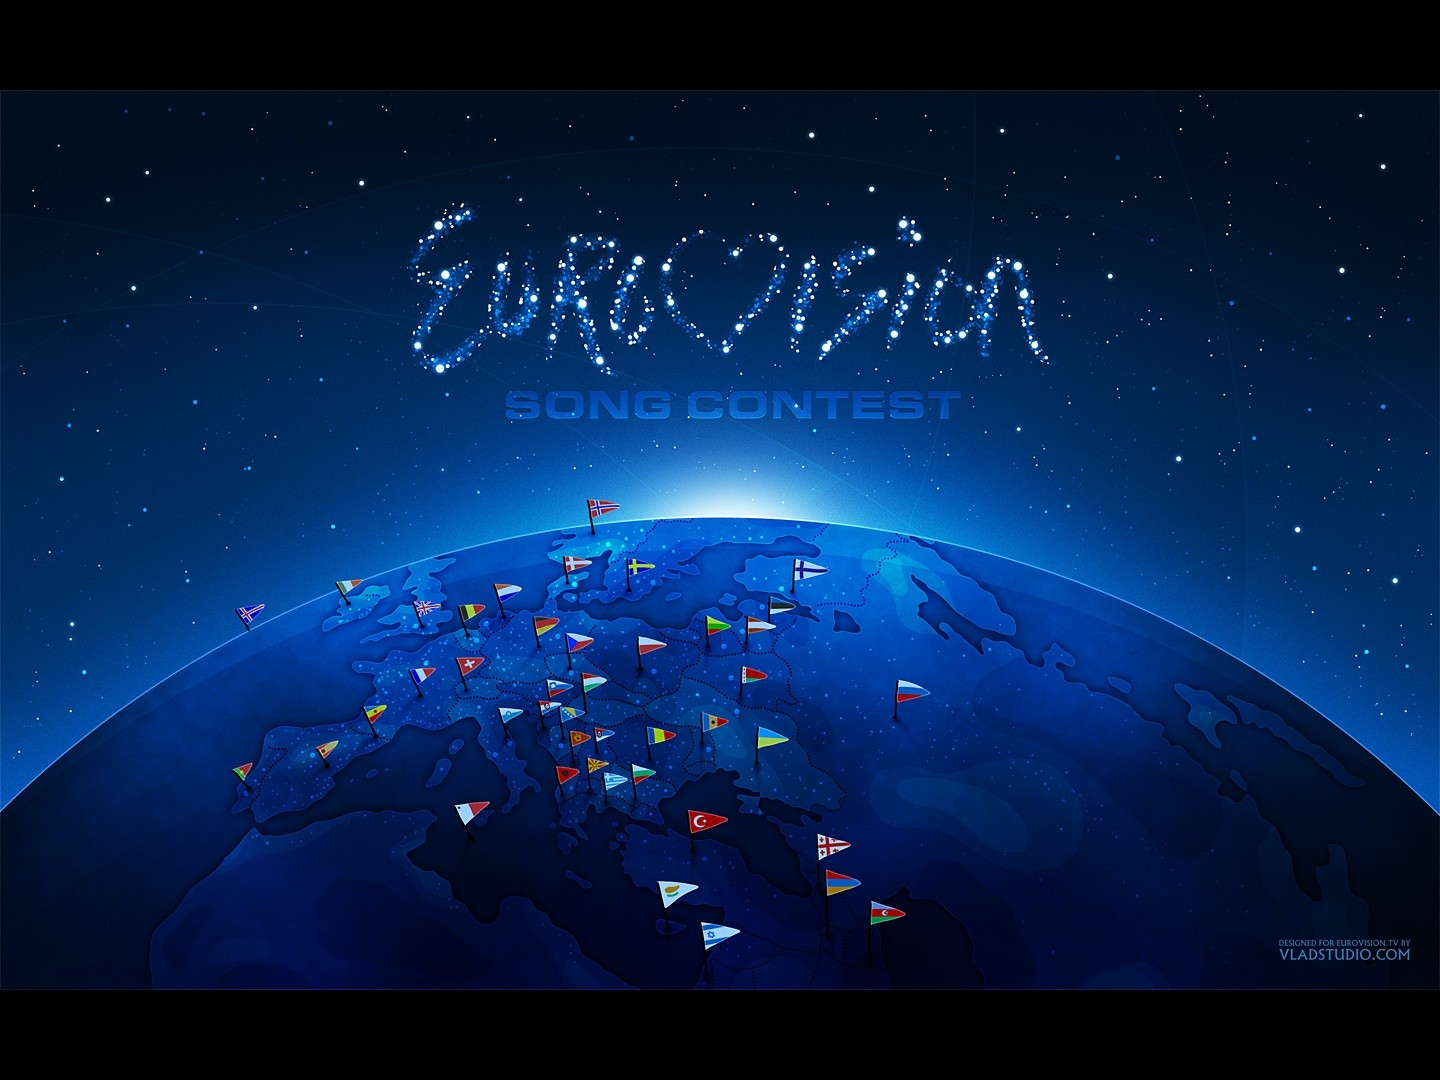 eurovision contest normal